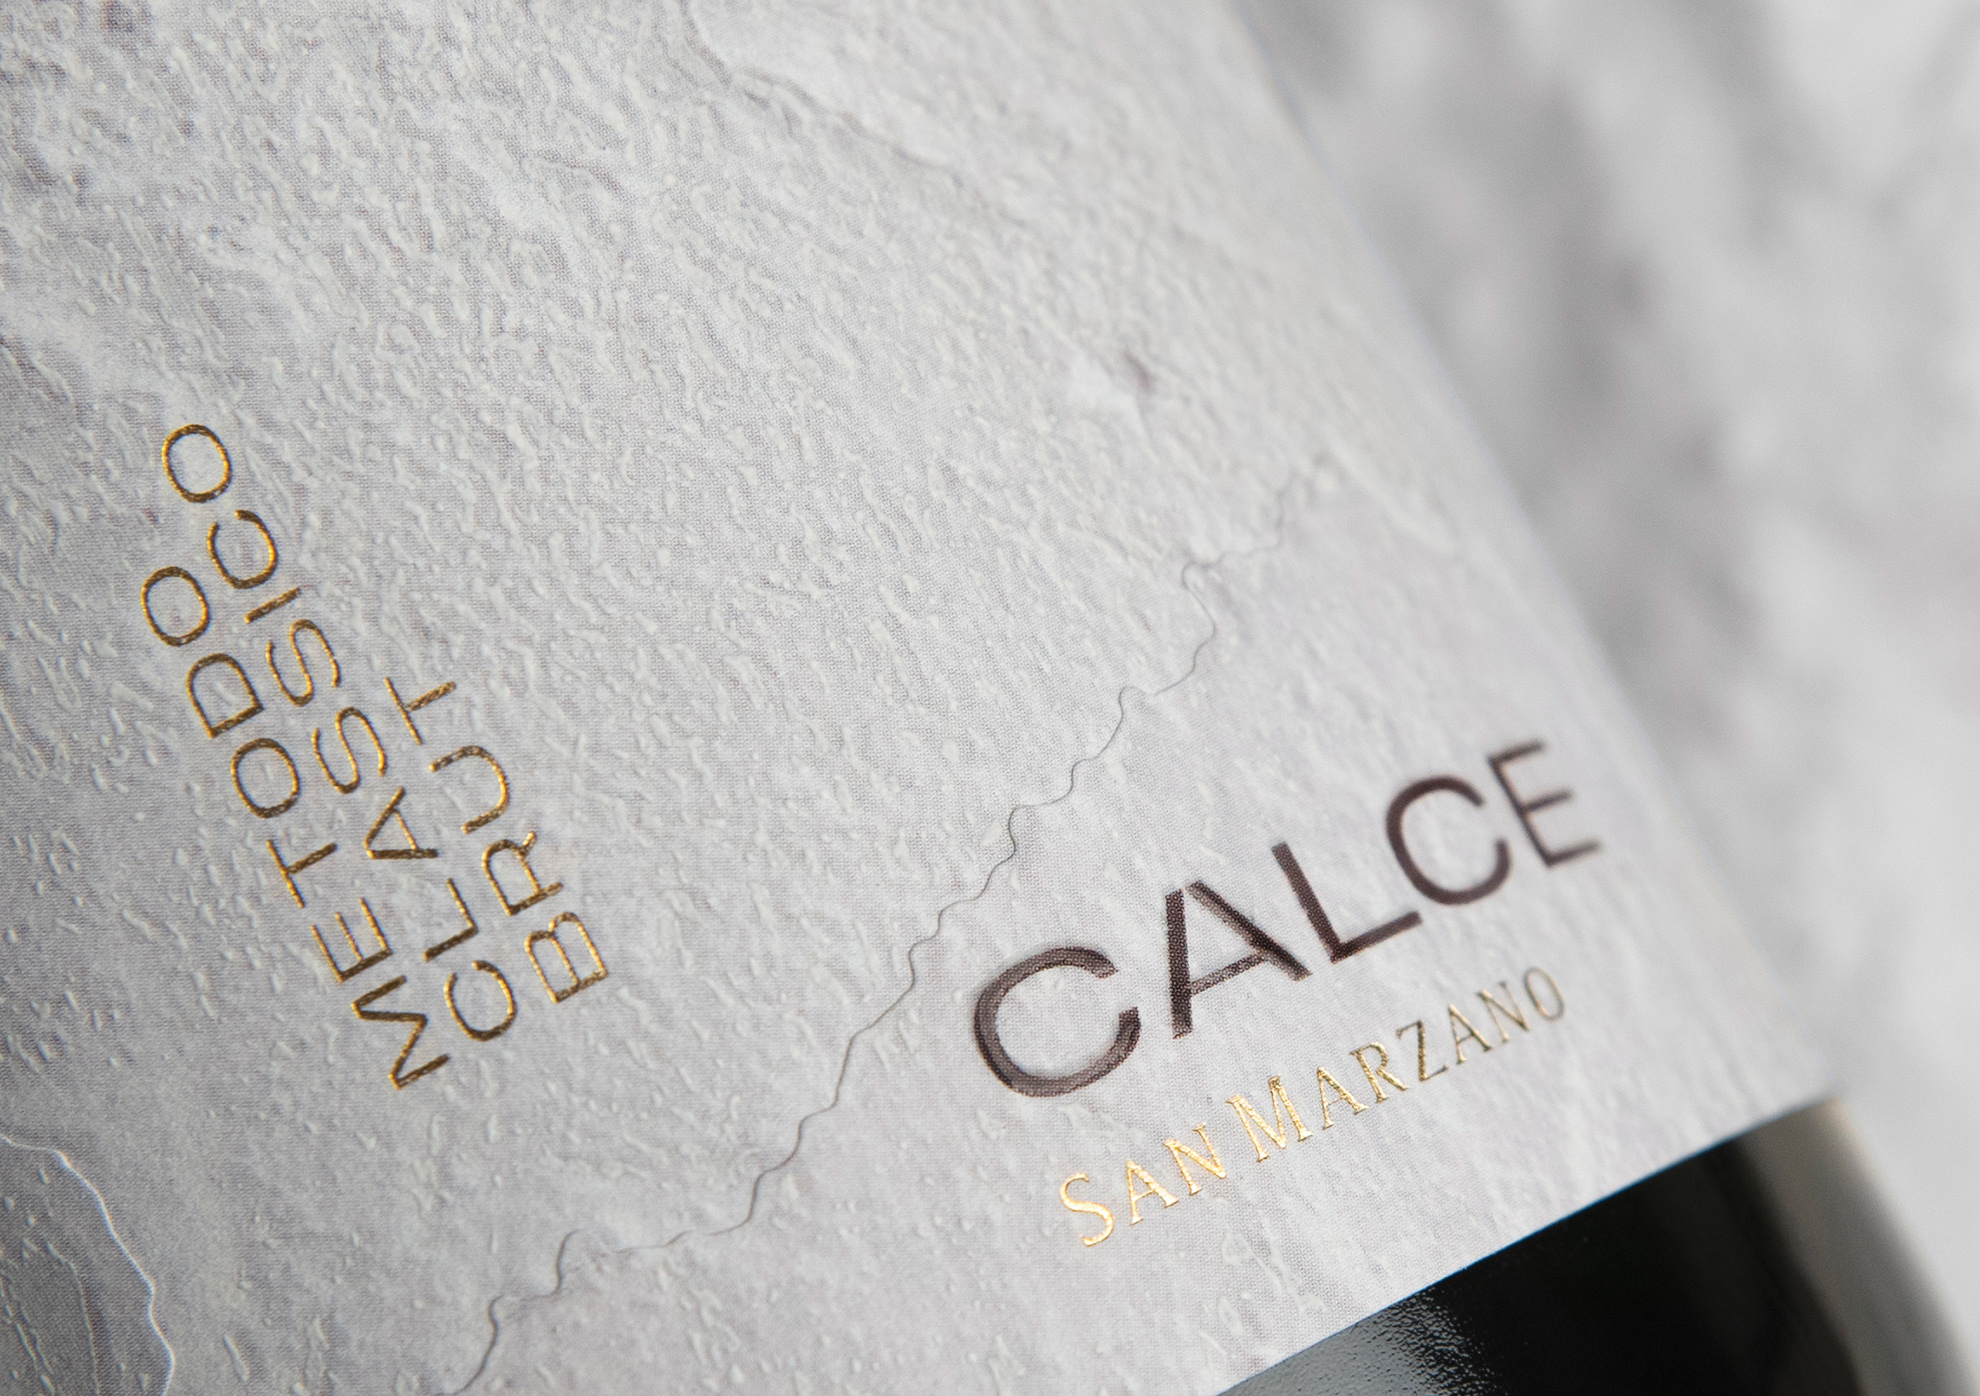 Calce Metodo Classico Brut Label Packaging Design by Usopposto